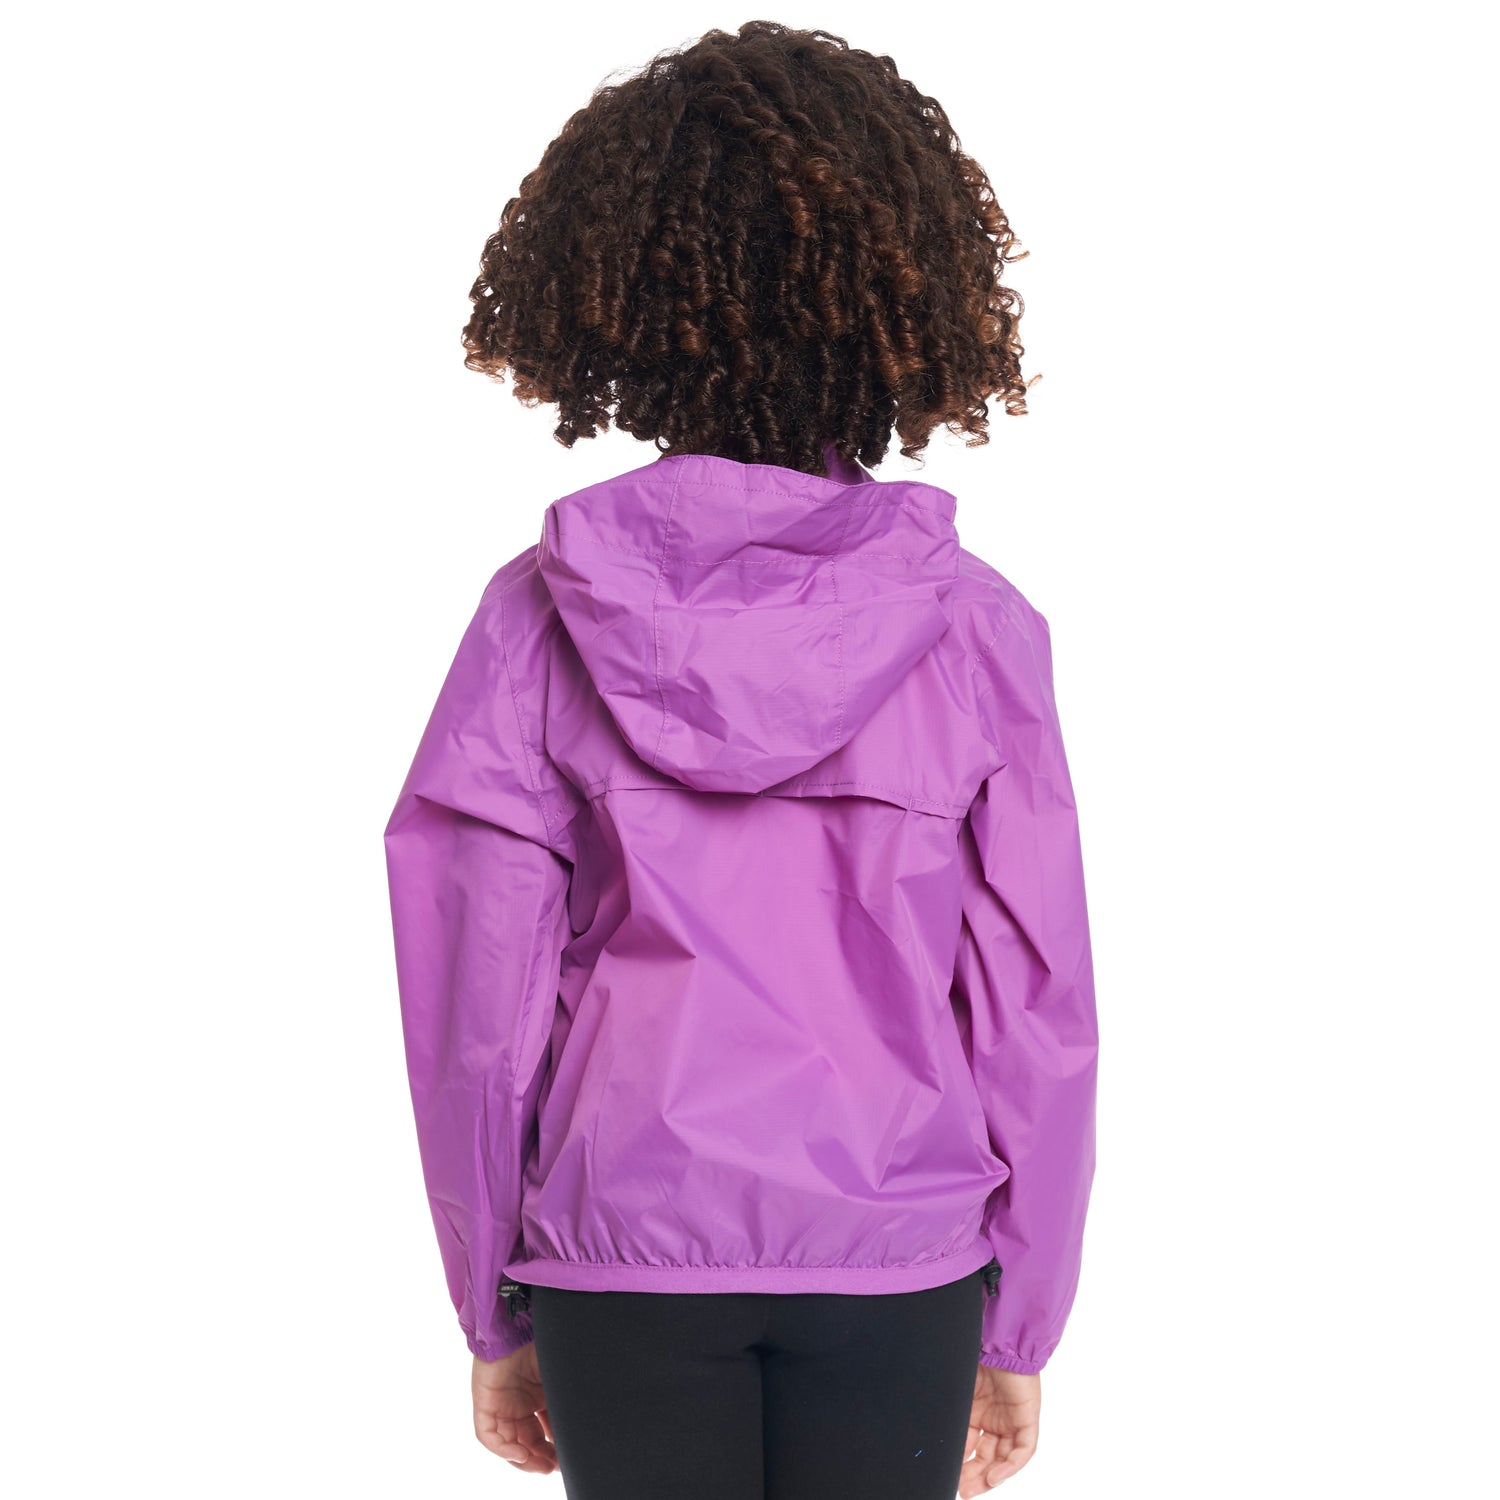 Kids Le Vrai 3.0 Leon Jacket Violet - Back